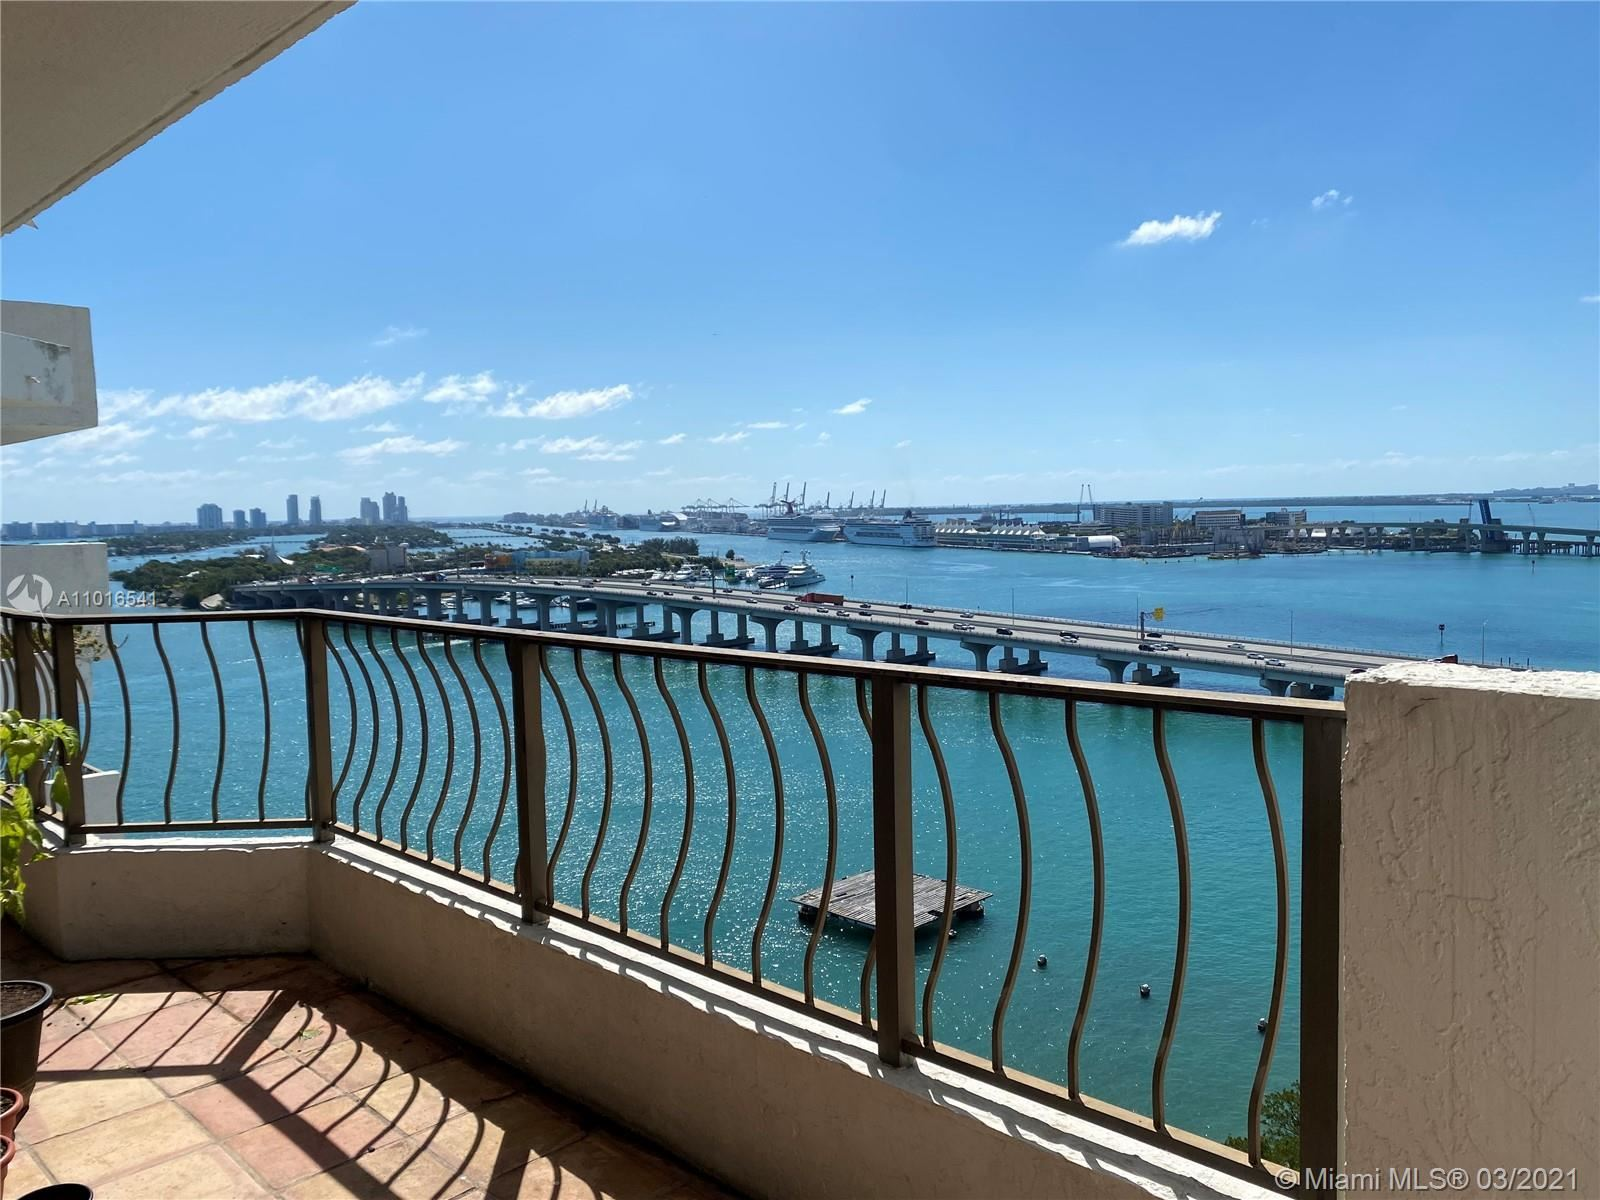 555 NE 15th St #21I, Miami, FL 33132 - #: A11016541